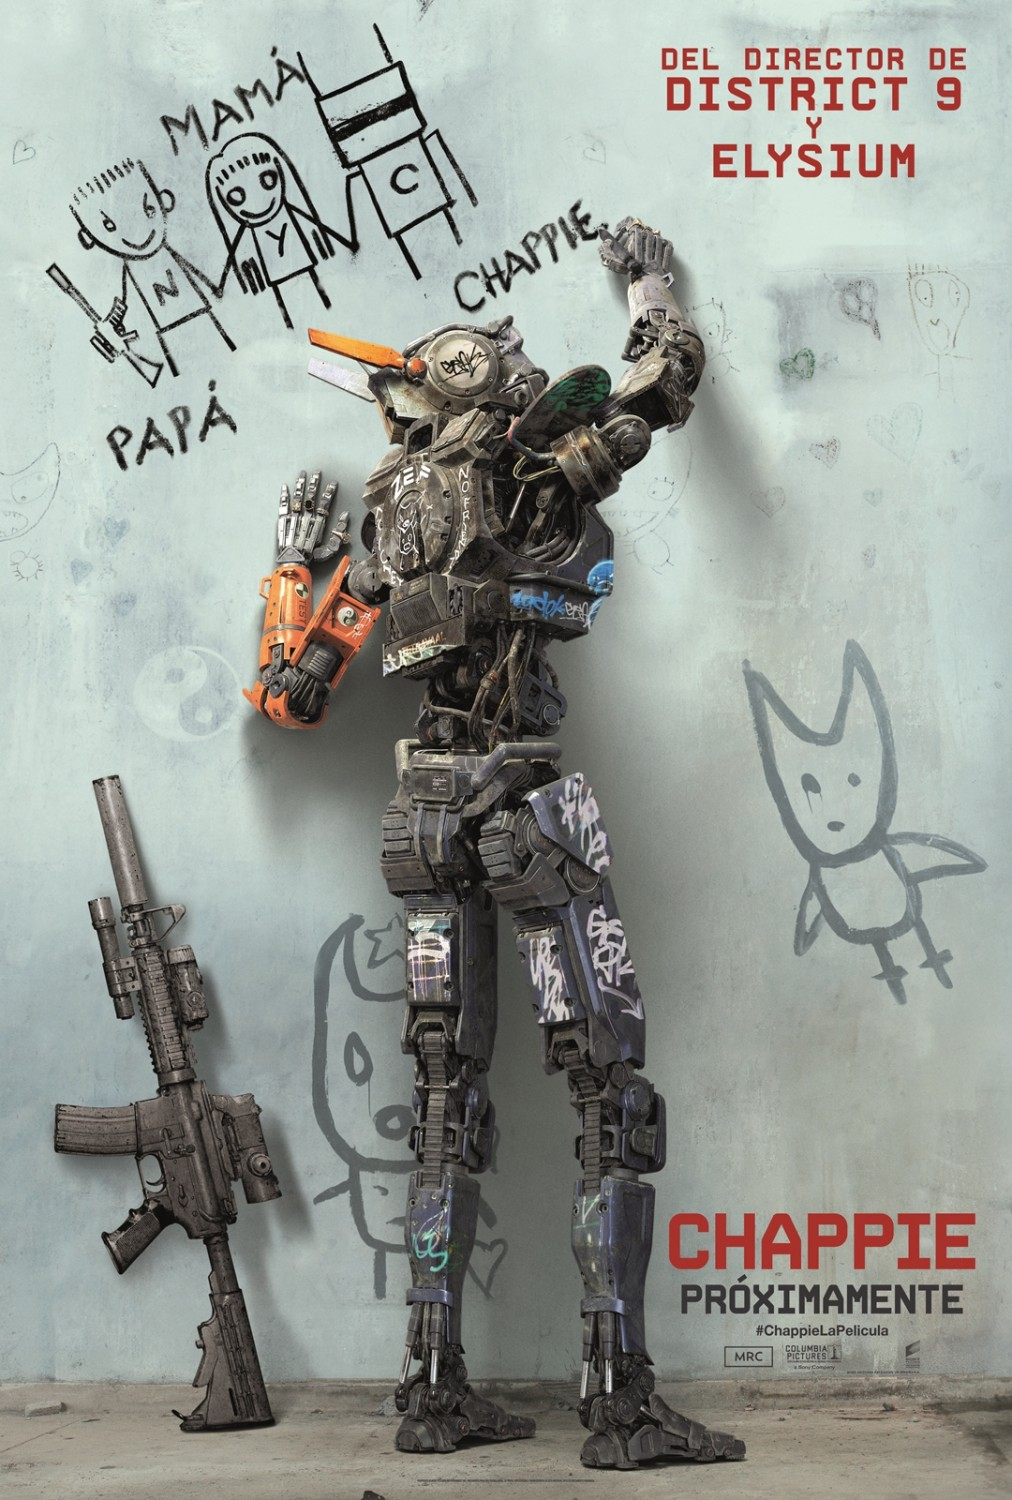 chappie cartaz cartas download torrent